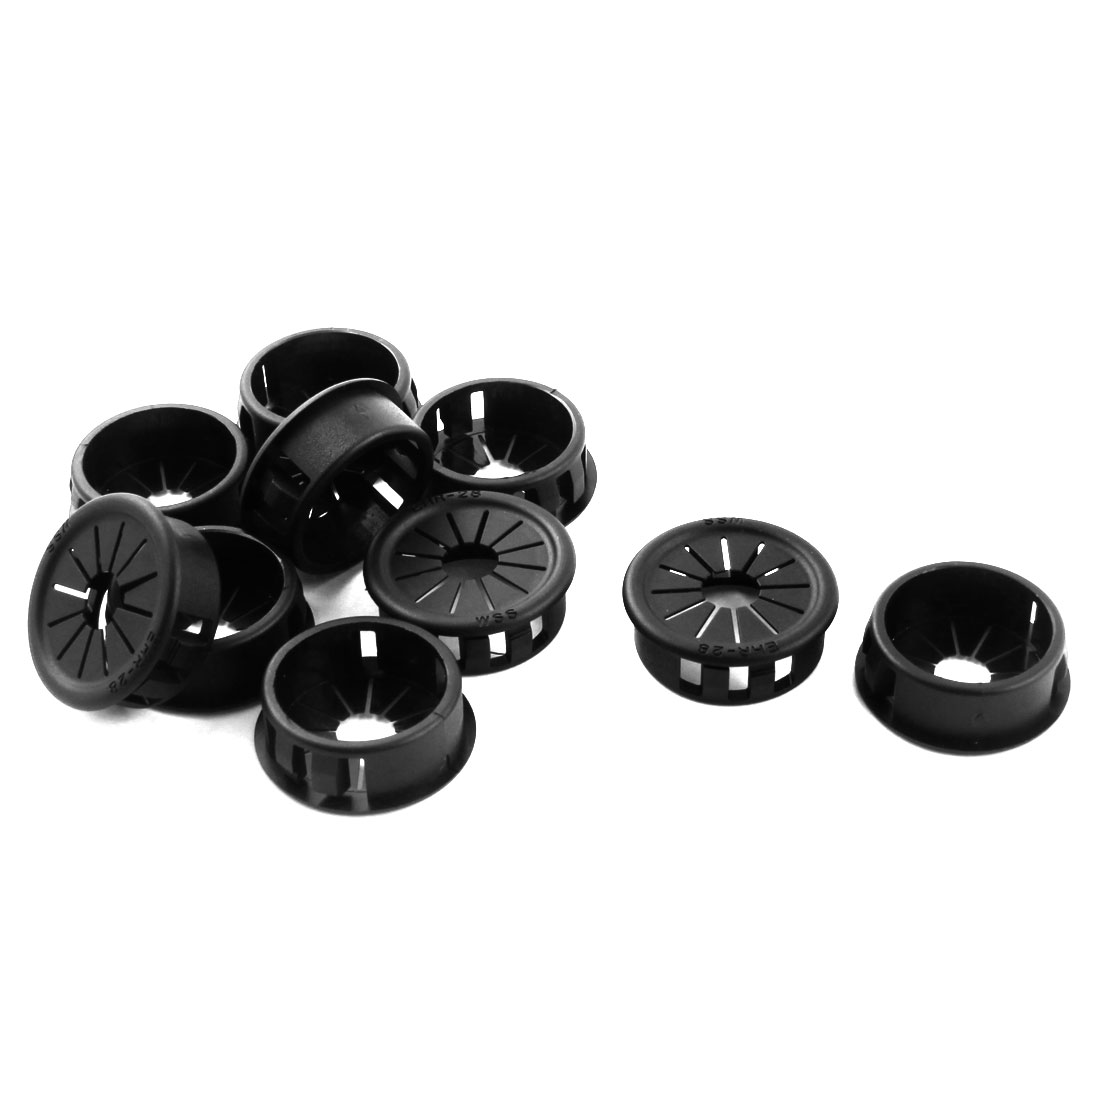 10Pcs 27.5mm Mount Hole Insulation Black Plastic Cable Pipe Snap in Lock Bushing Protector Grommet Harness